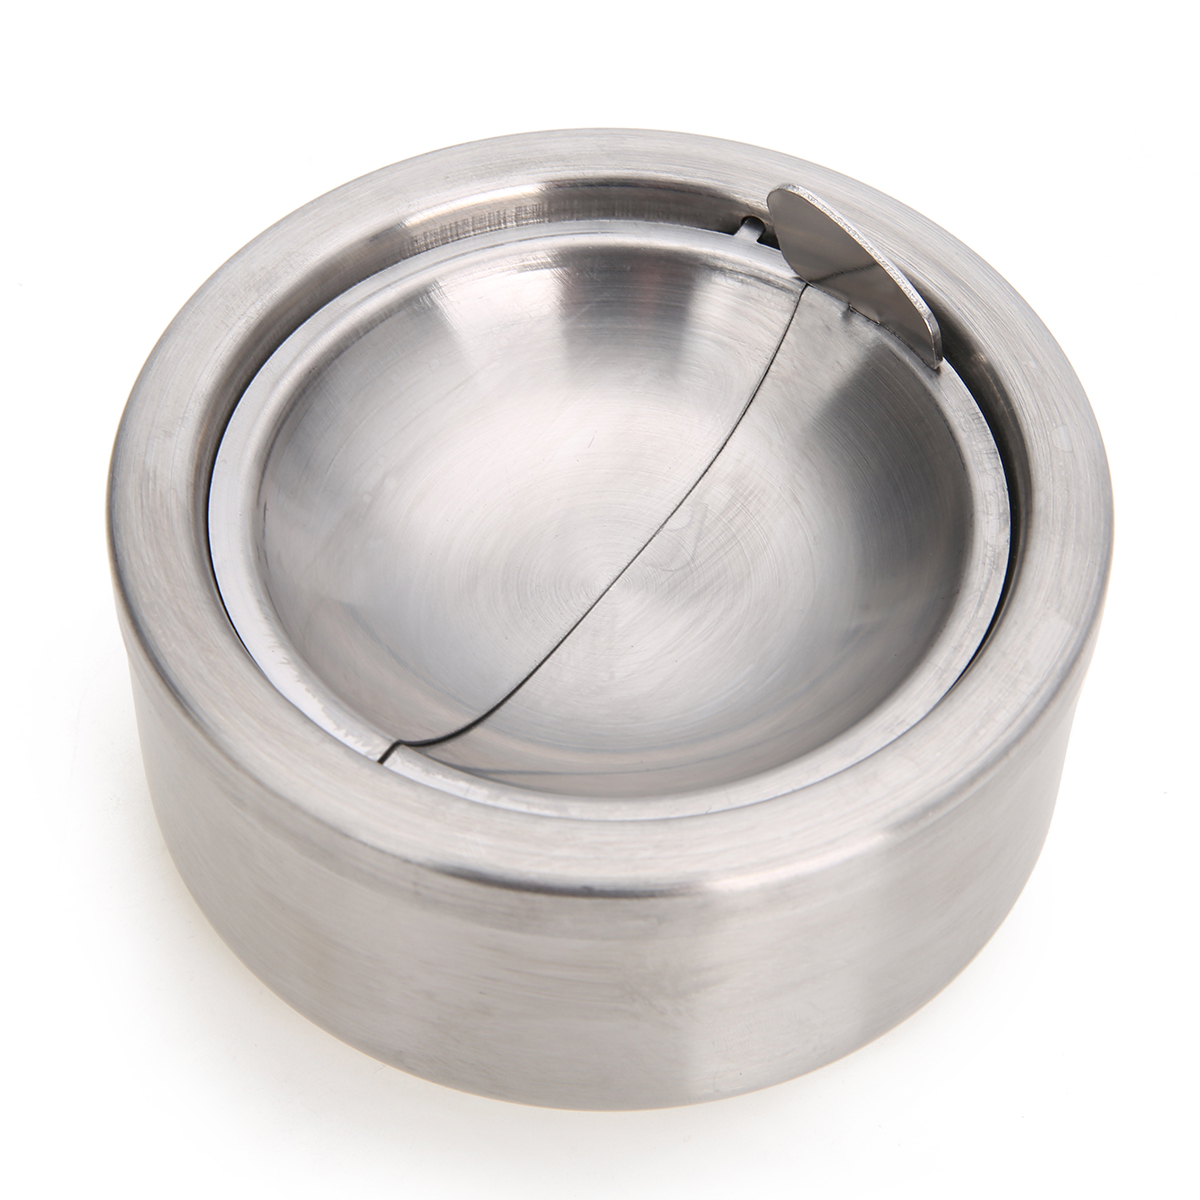 1pc Cigarette Lidded Ashtray Stainless Steel Silver Windproof Ashtray with Lid Round Shape Smoking Ash Tray Under-cabinet lighting